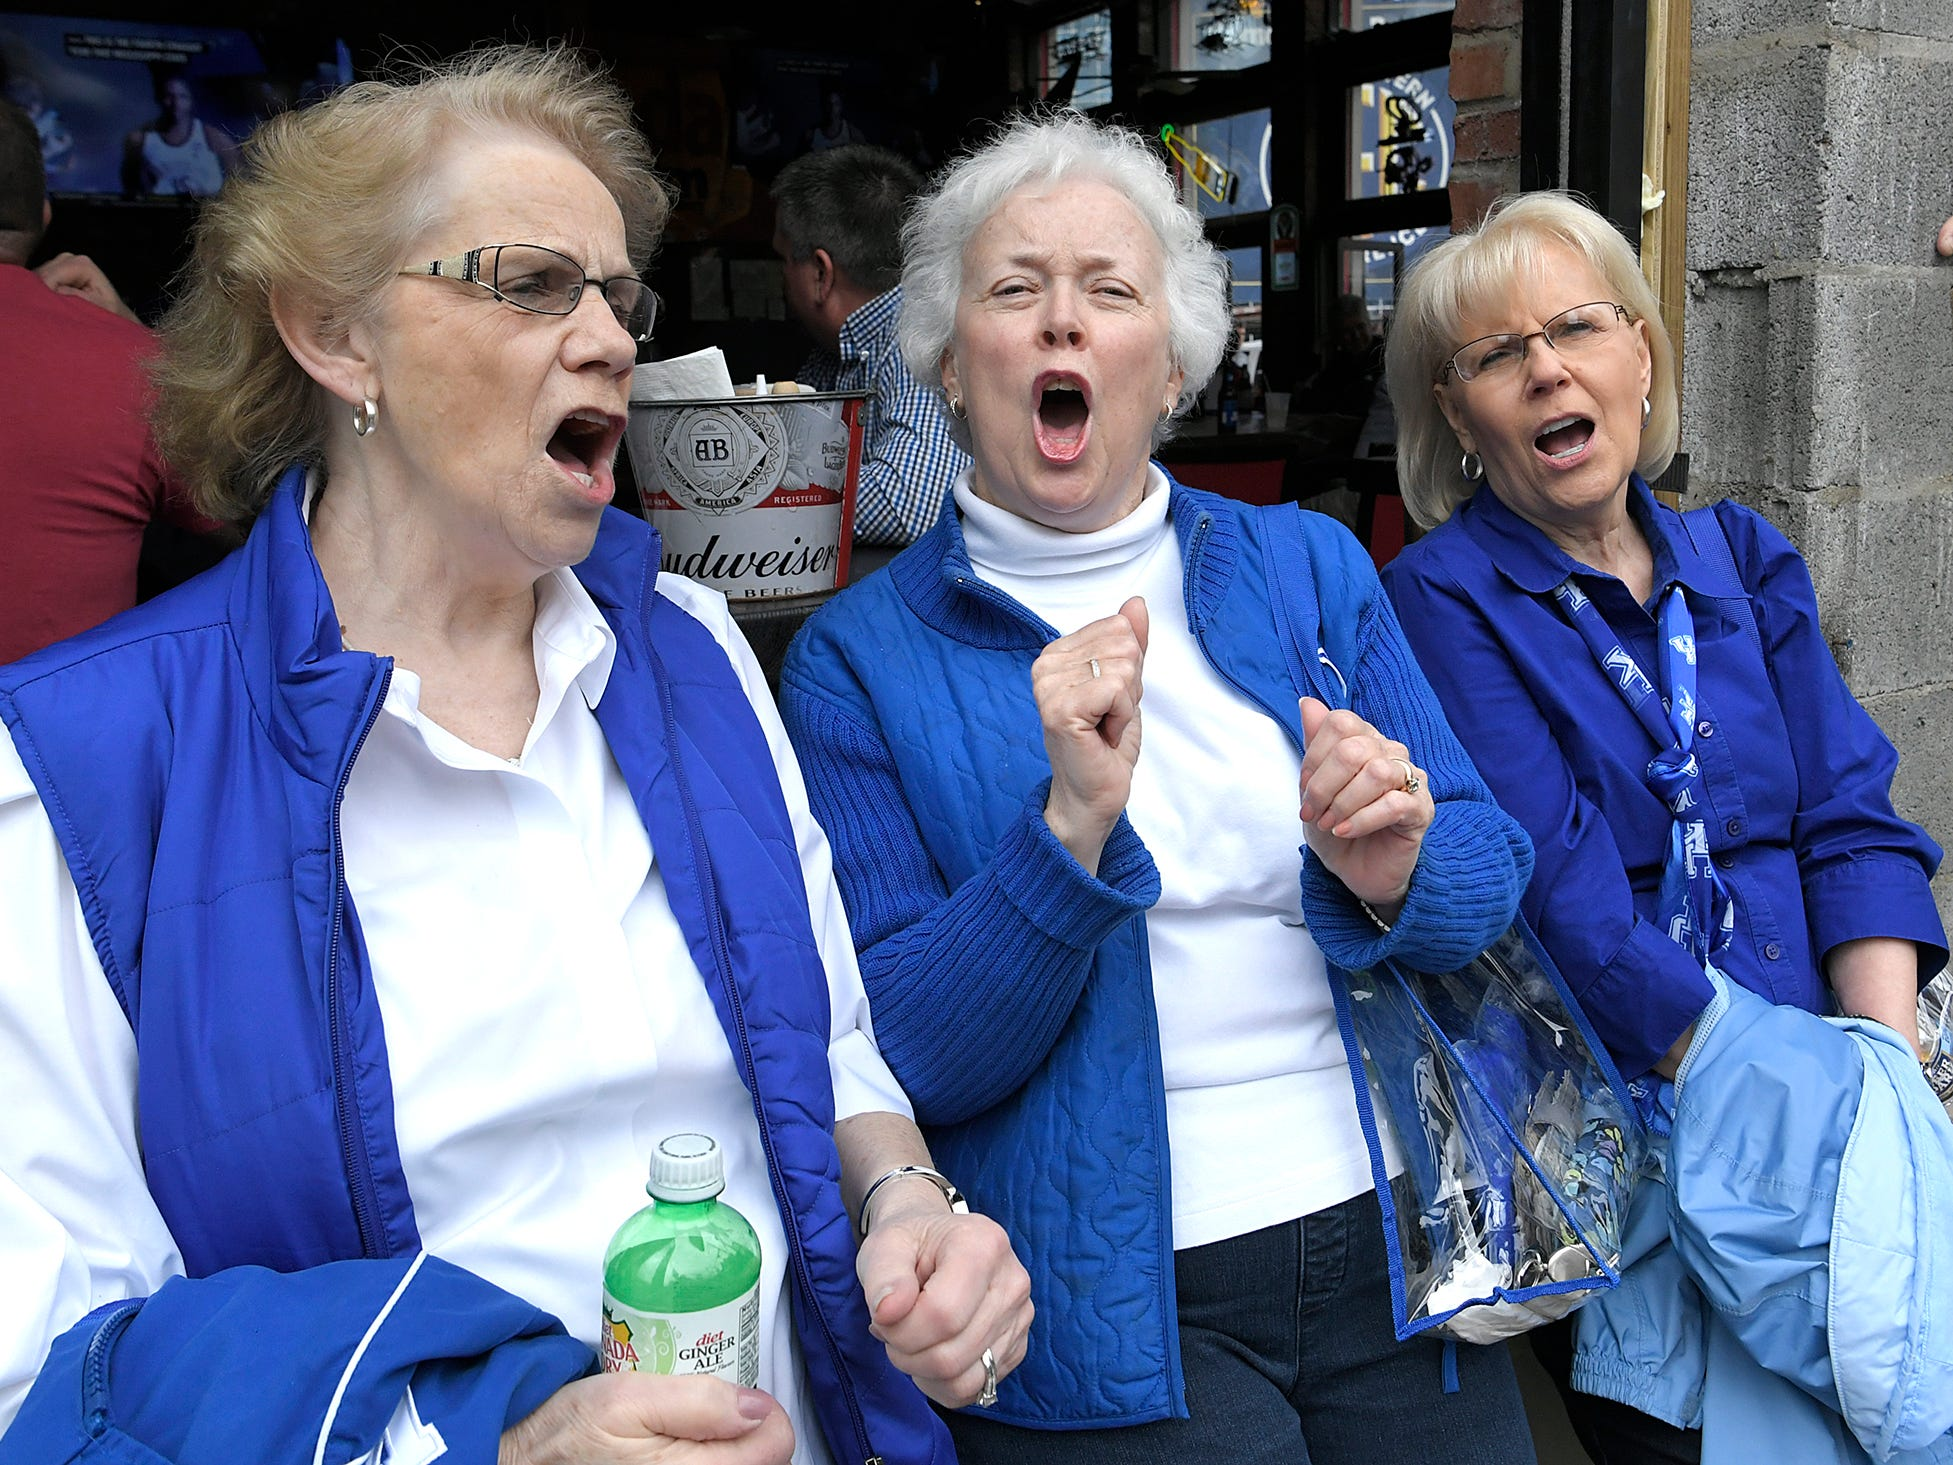 Kentucky fans Faye Warfield, Dee Hayes and Anna Raines yell a team cheer on Broadway during the SEC Mens Basketball Tournament in Nashville on Thursday, March 14, 2019.